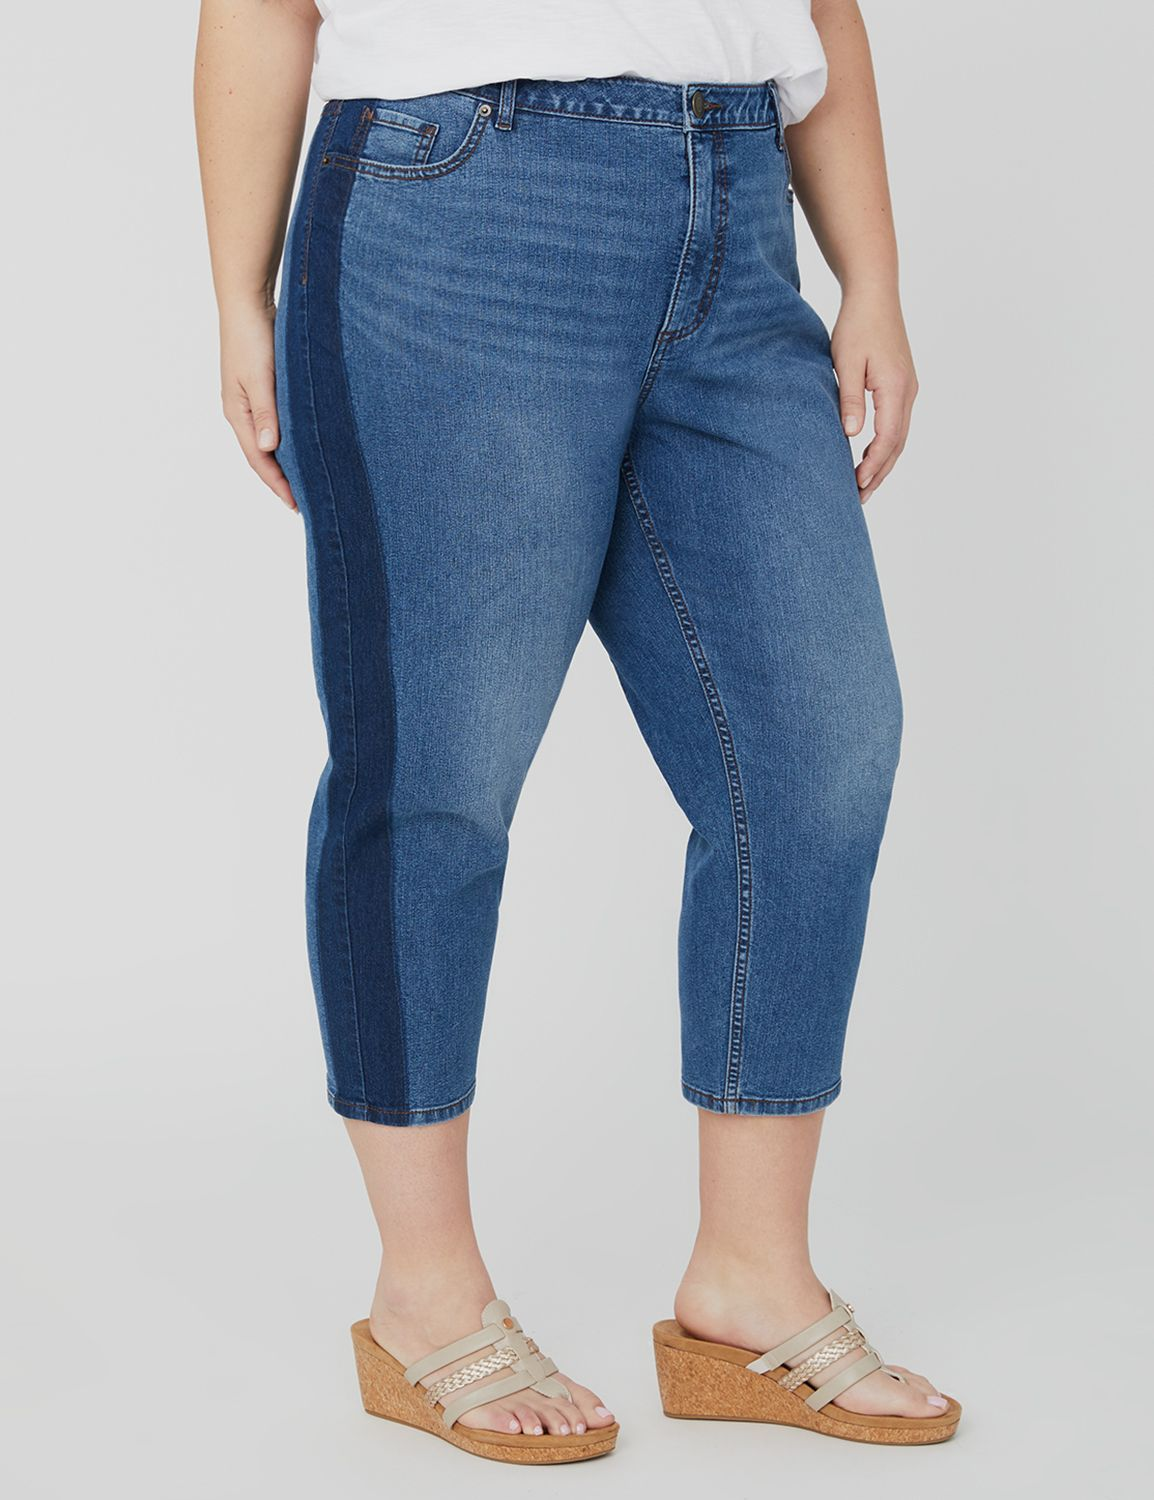 Jean Capri with Dark-Wash Stripe 1088046 2-TONE DENIM WASH ON SIDE S MP-300099558